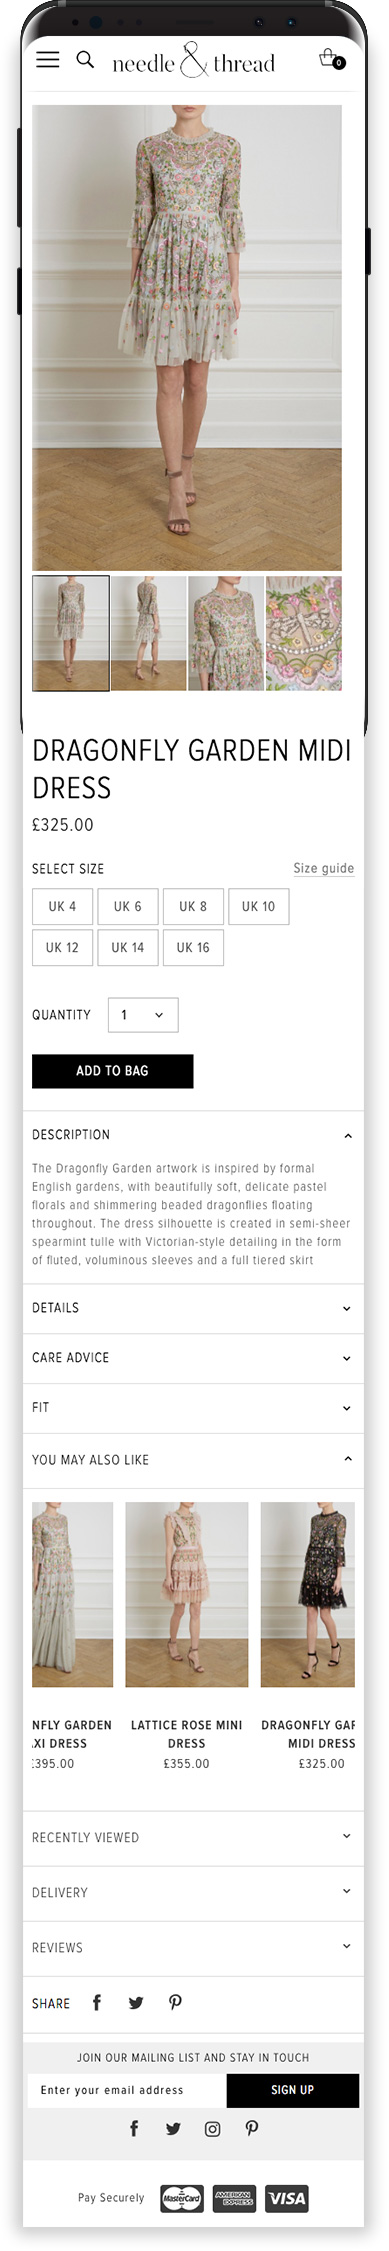 Magento Fashion Website on Mobile Device